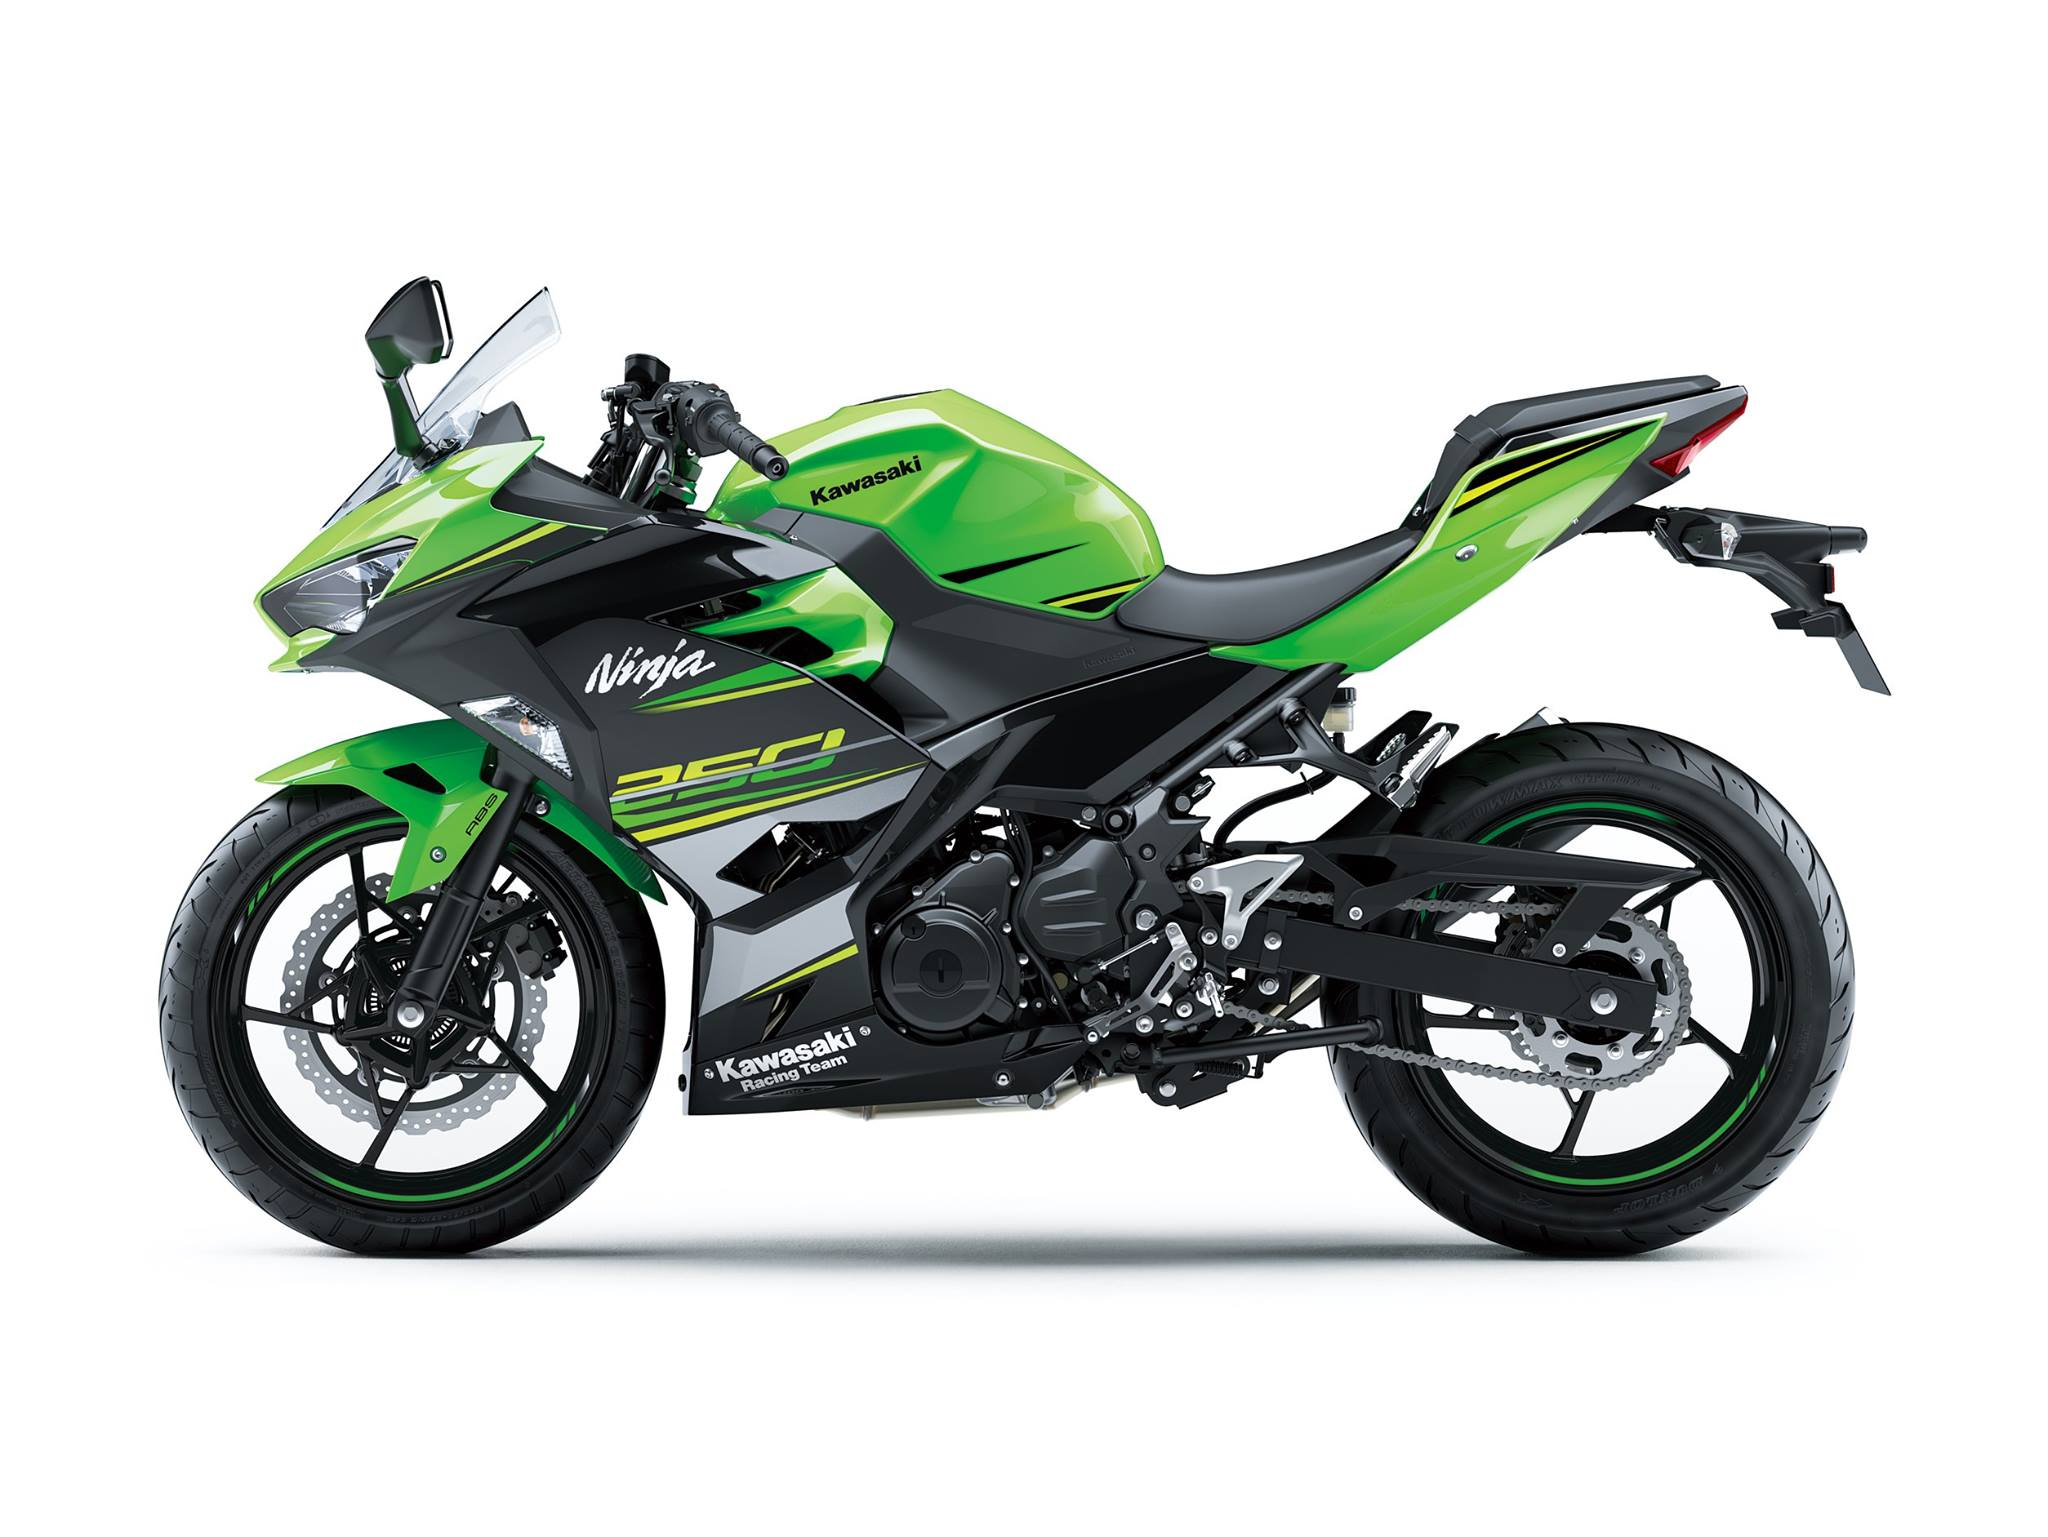 All New Kawasaki Ninja 250 FI Versi 2018 Warna Warna Hijau Striping p7